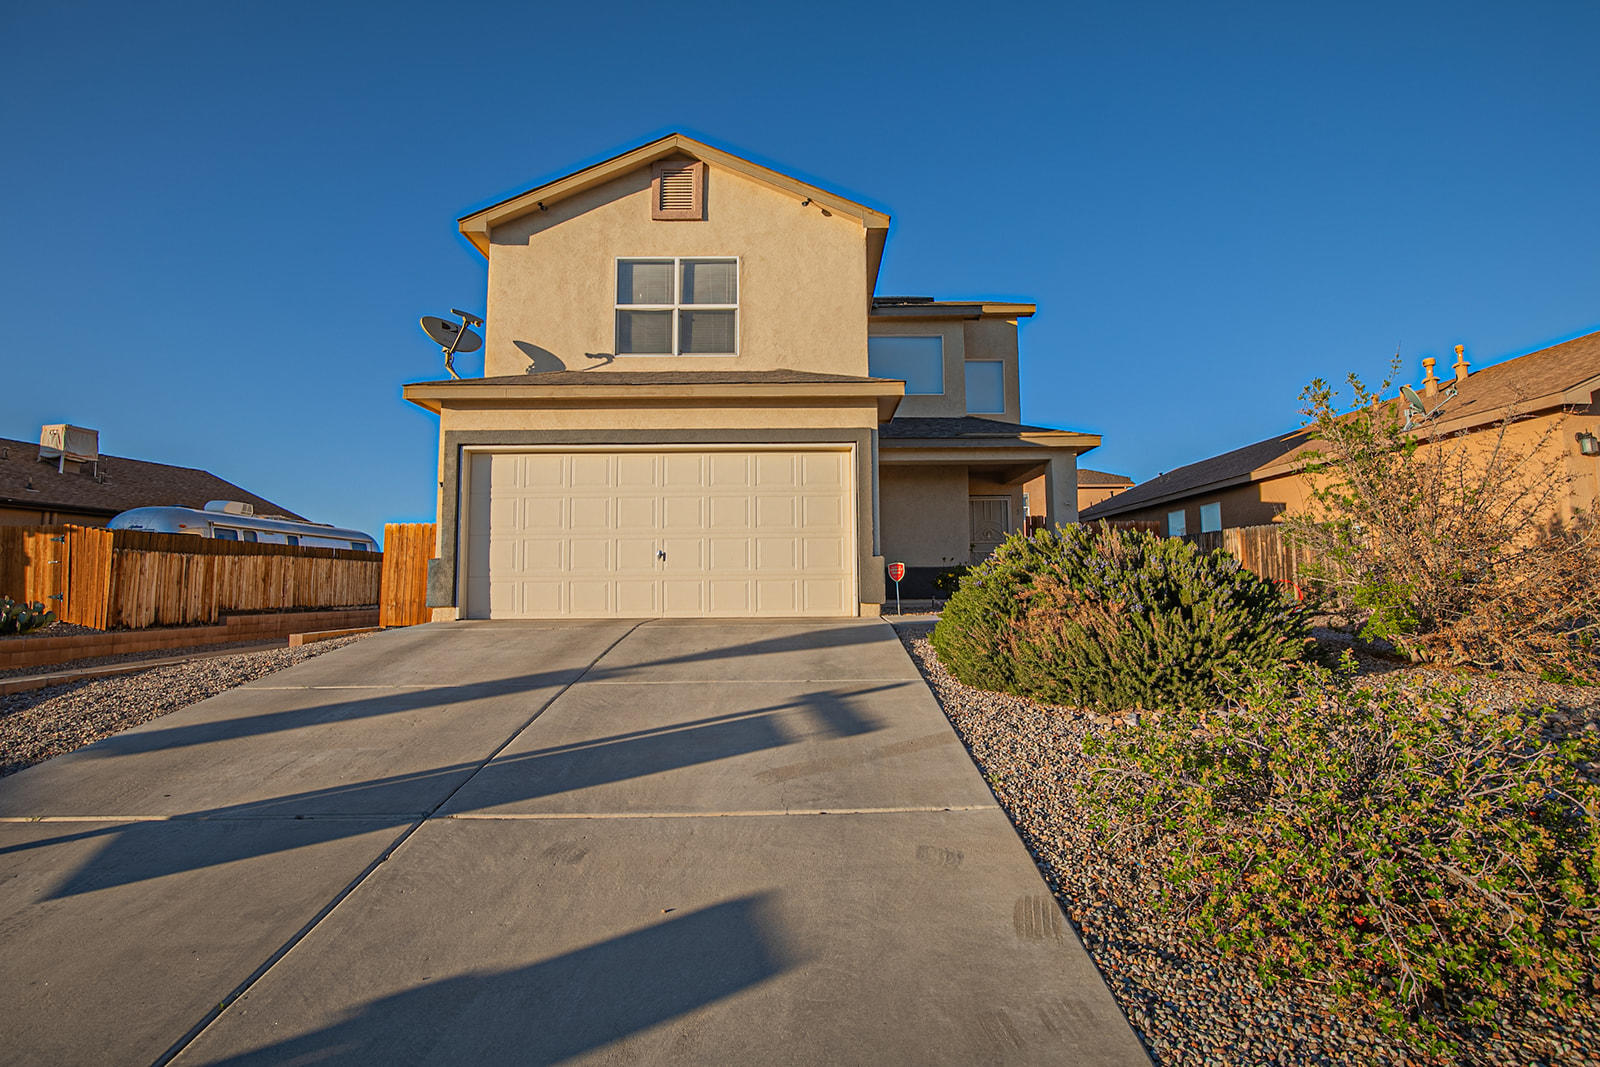 Welcome home to the Tome Vista subdivision! This cute 3 bedroom home with walk in closets in each room! Loft area upstairs makes for great entertainment and solar panels for low monthly PNM bill.